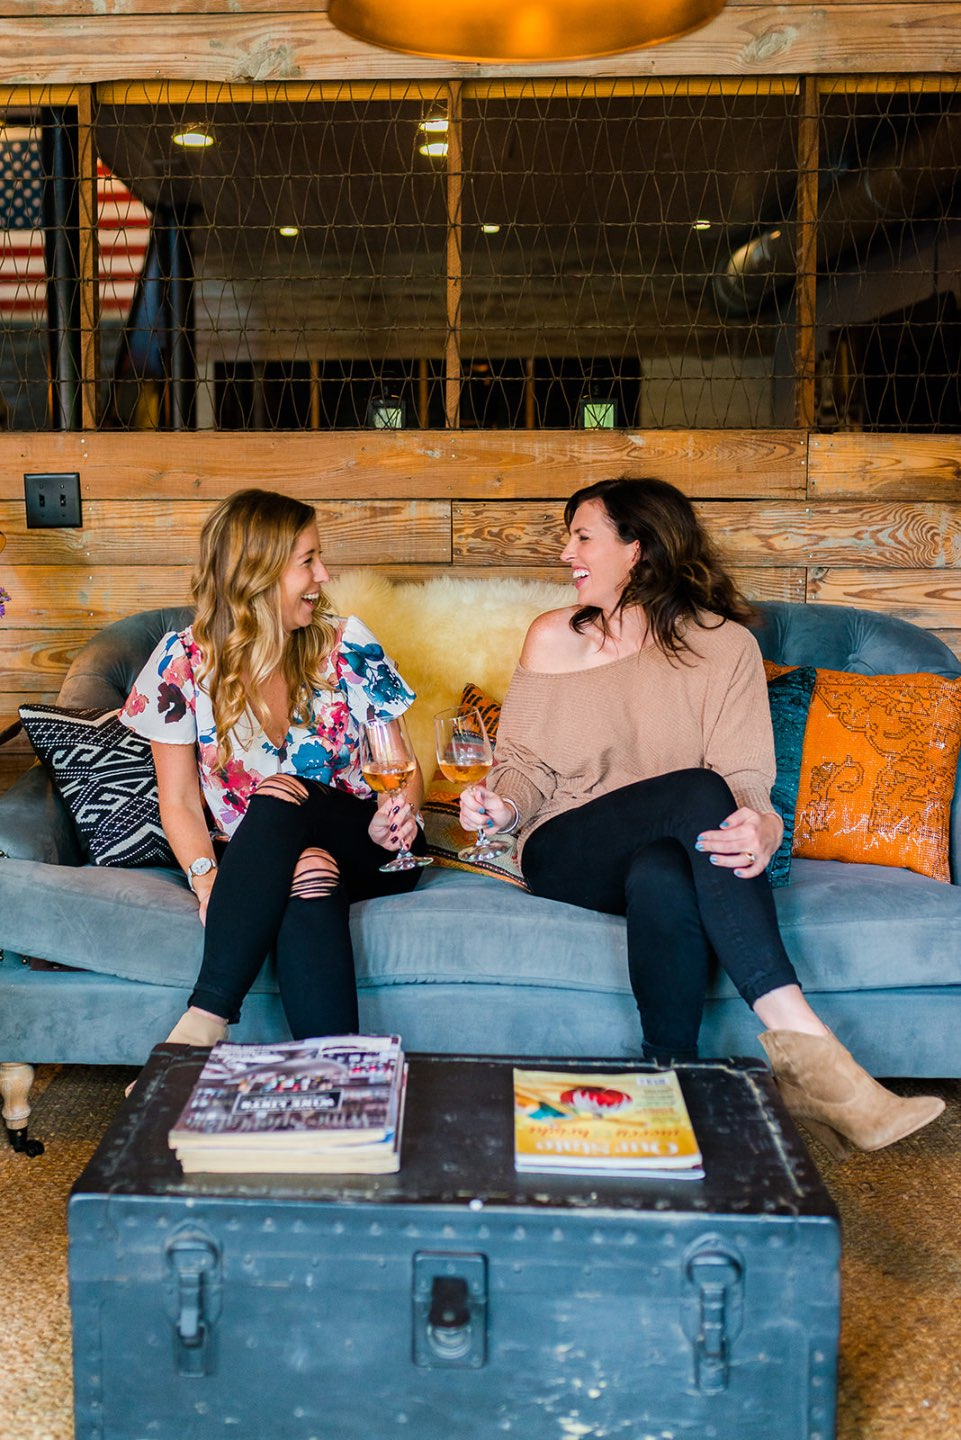 How to Set Healthy Boundaries with Friends: 8 Essential Tips - I'm Fixin' To - @mbg0112 | How to Set Healthy Boundaries with Friends: 8 Essential Tips by popular NC life and style blog, I'm Fixin' To: image of a woman sitting on a couch with a friend while they share a drink.